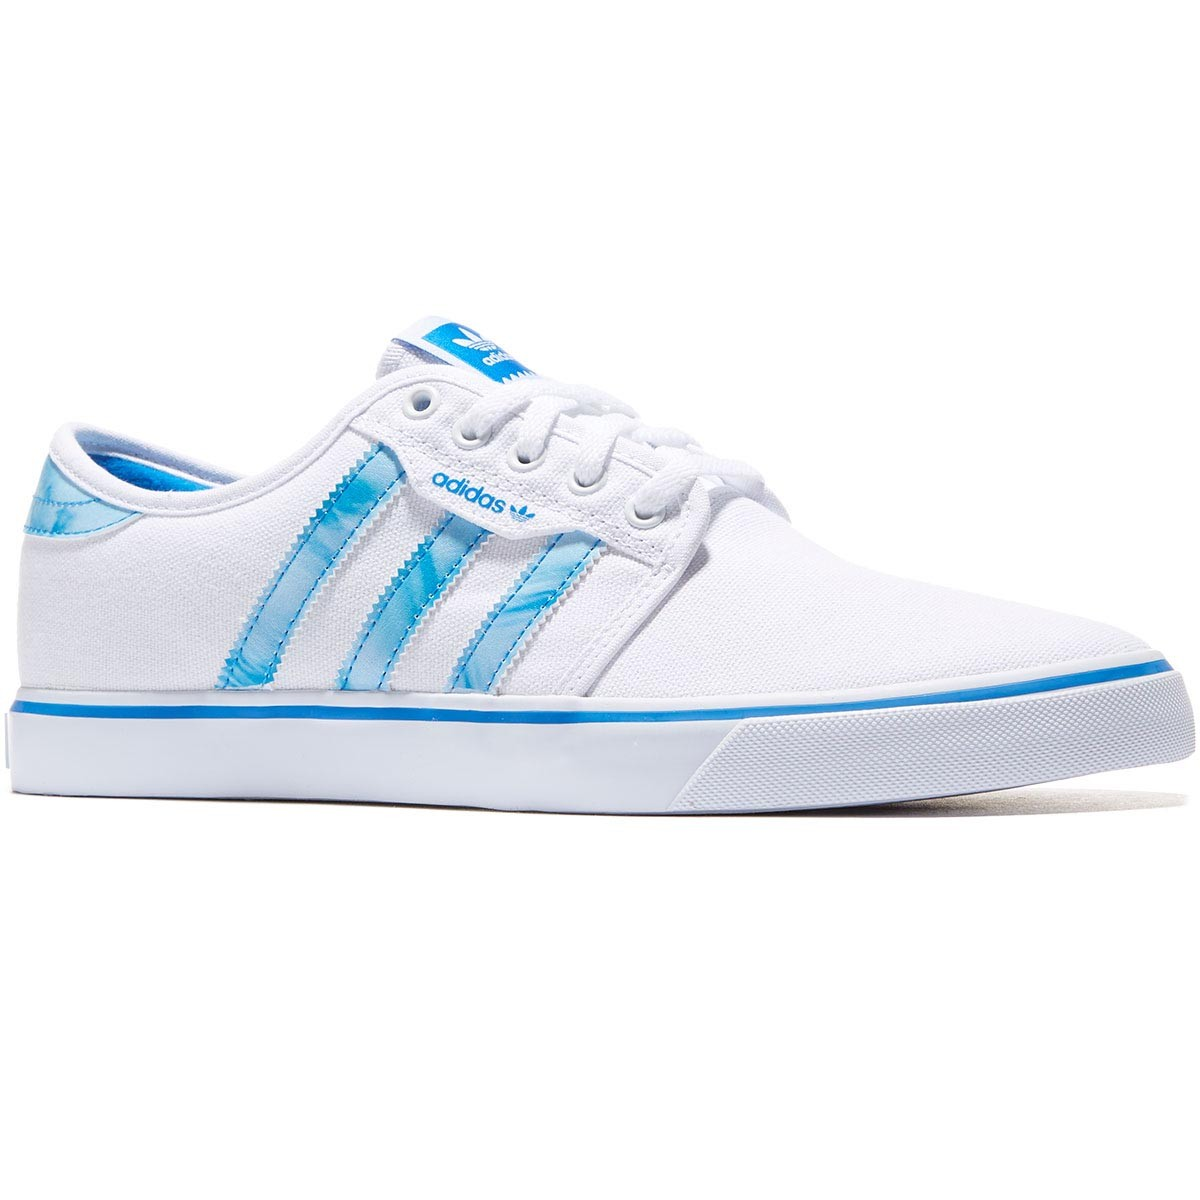 Adidas Seeley Shoes - White/Bluebird/White - 8.0